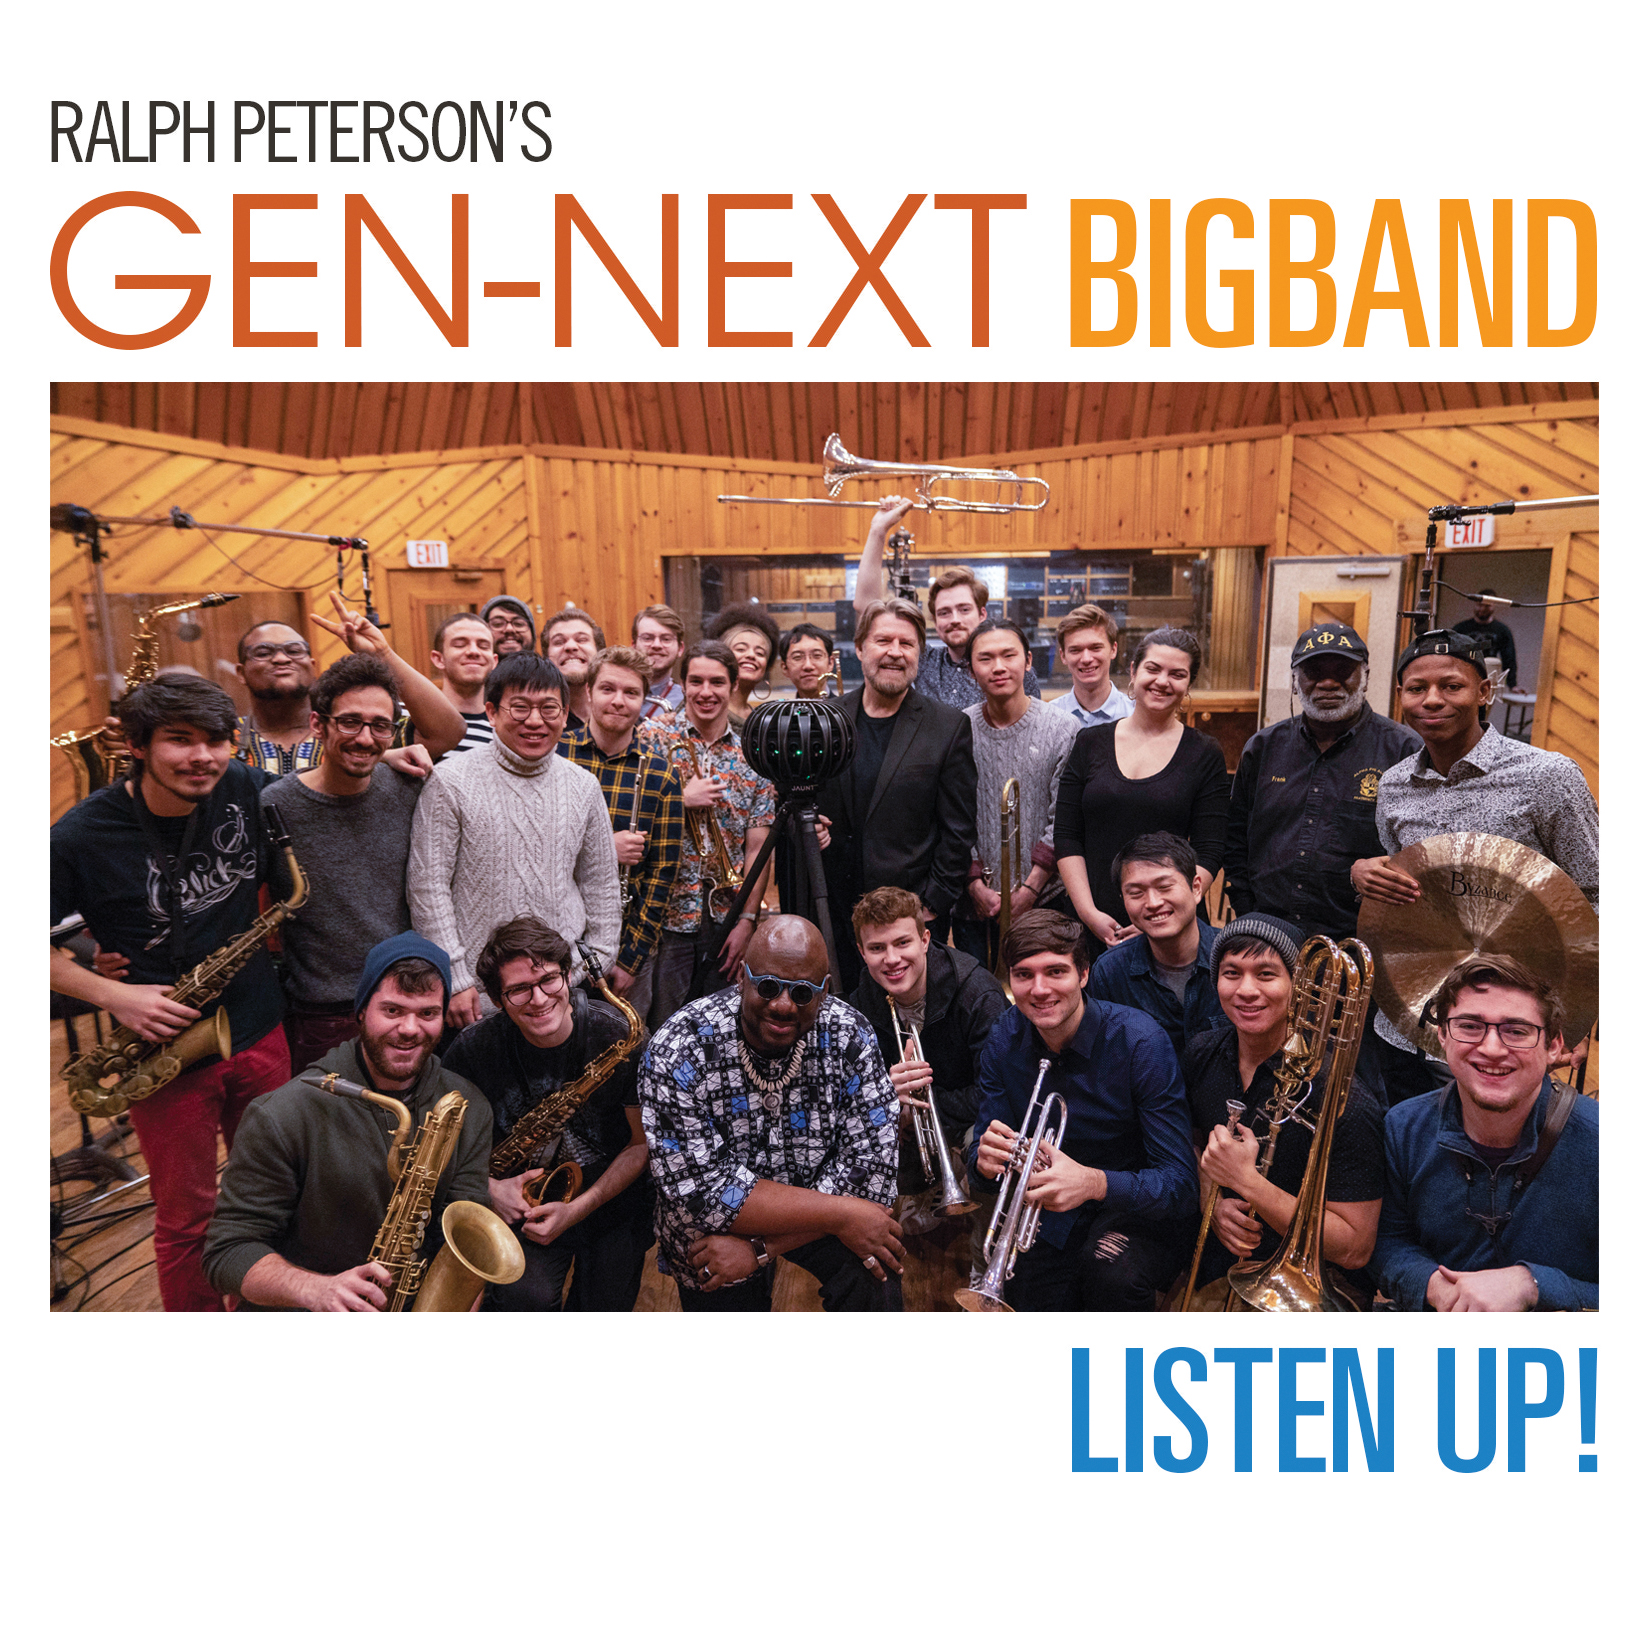 REVIEW: Jim Hynes Reviews Ralph Peterson and the GenNext Big Band's LISTEN UP for Glide